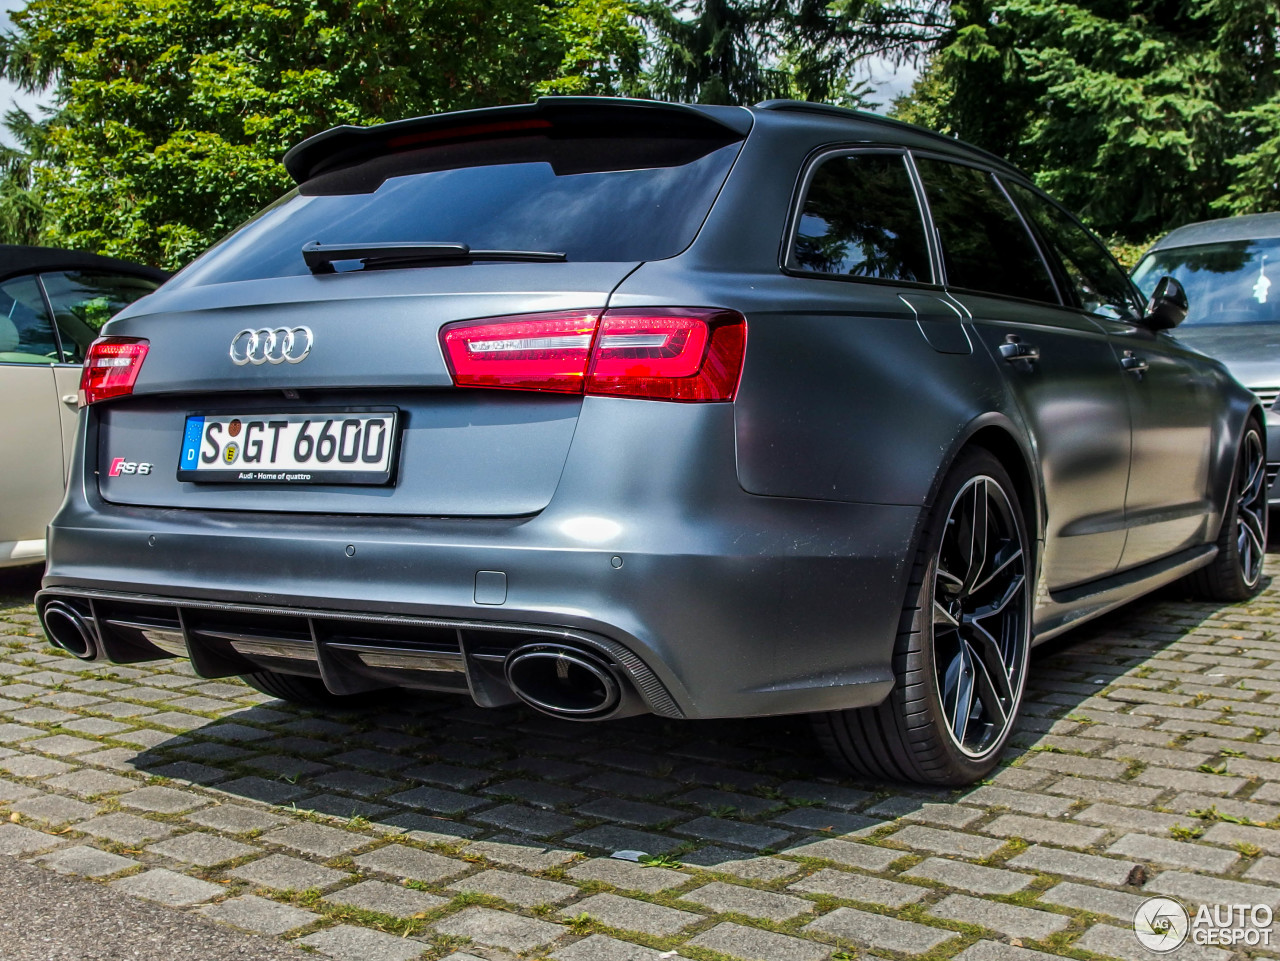 audi rs6 avant c7 21 juillet 2014 autogespot. Black Bedroom Furniture Sets. Home Design Ideas